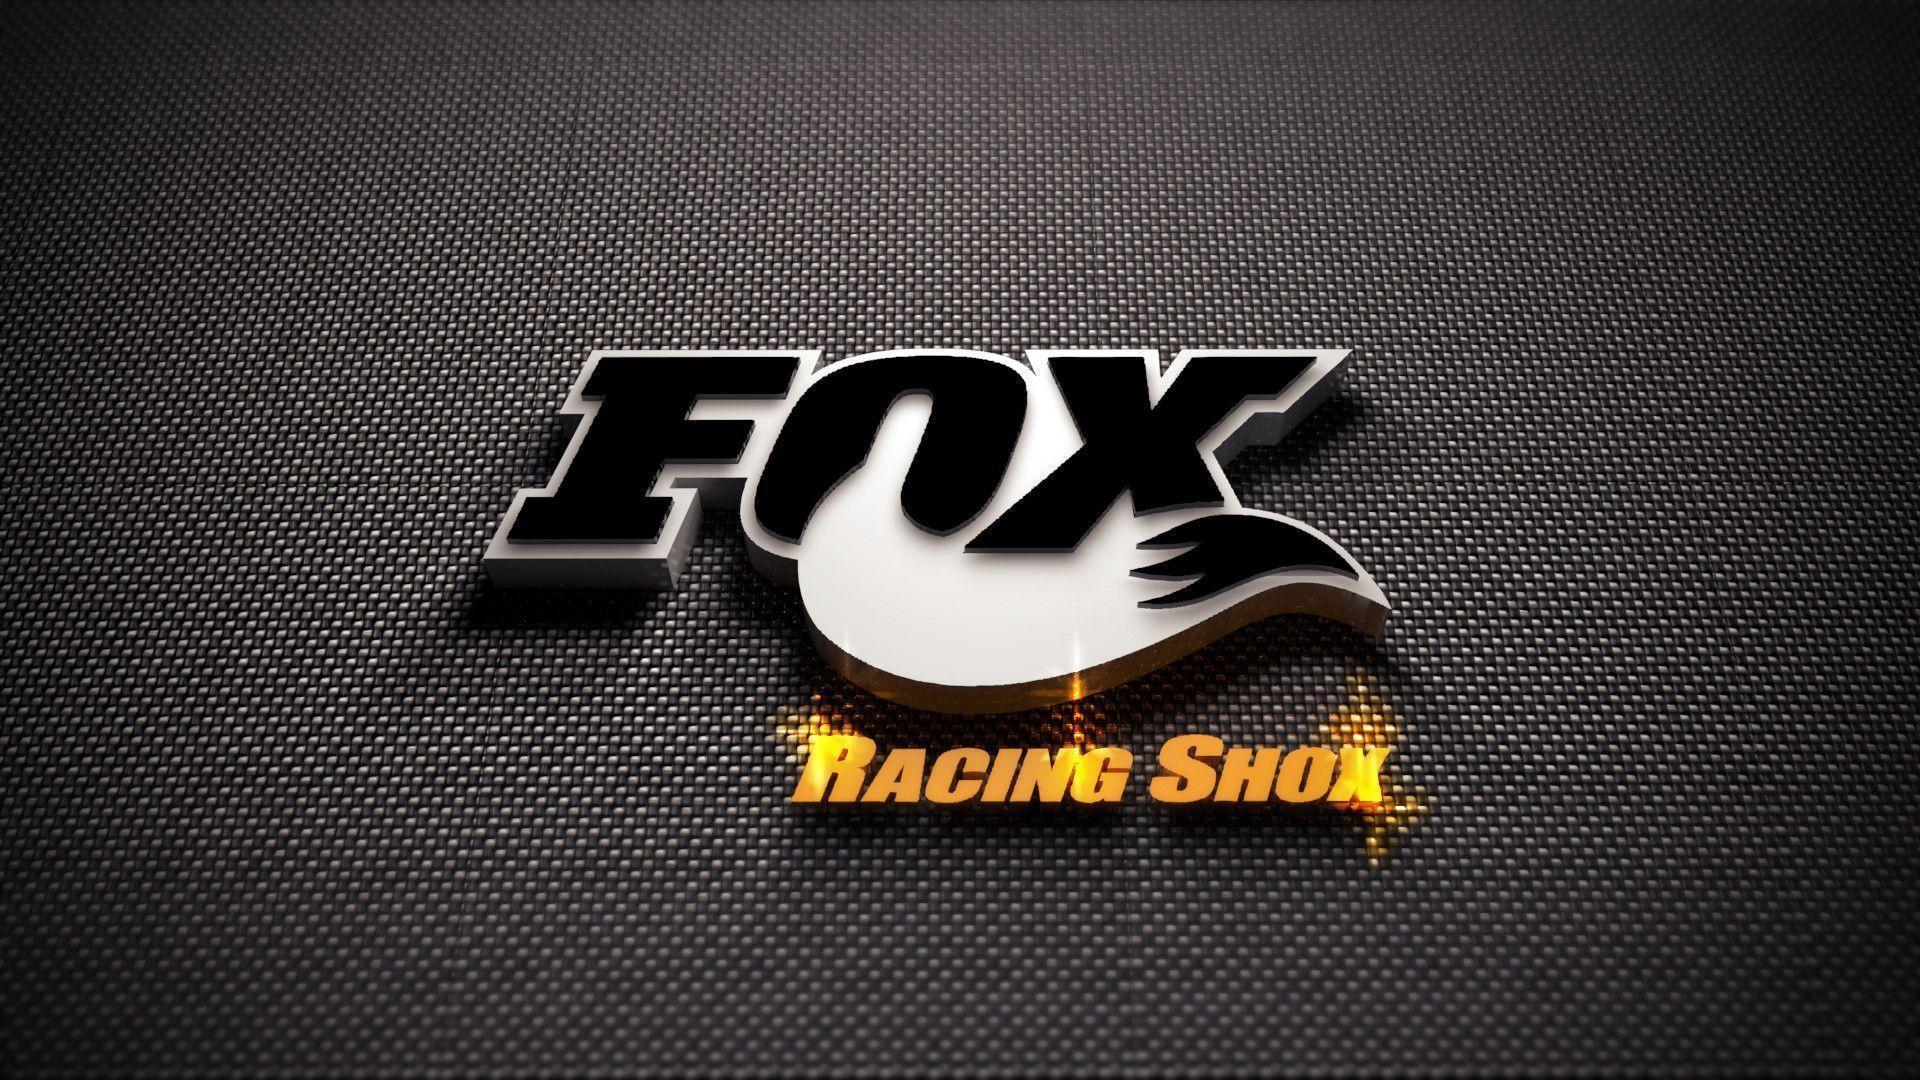 Wallpapers For > Camo Fox Racing Backgrounds